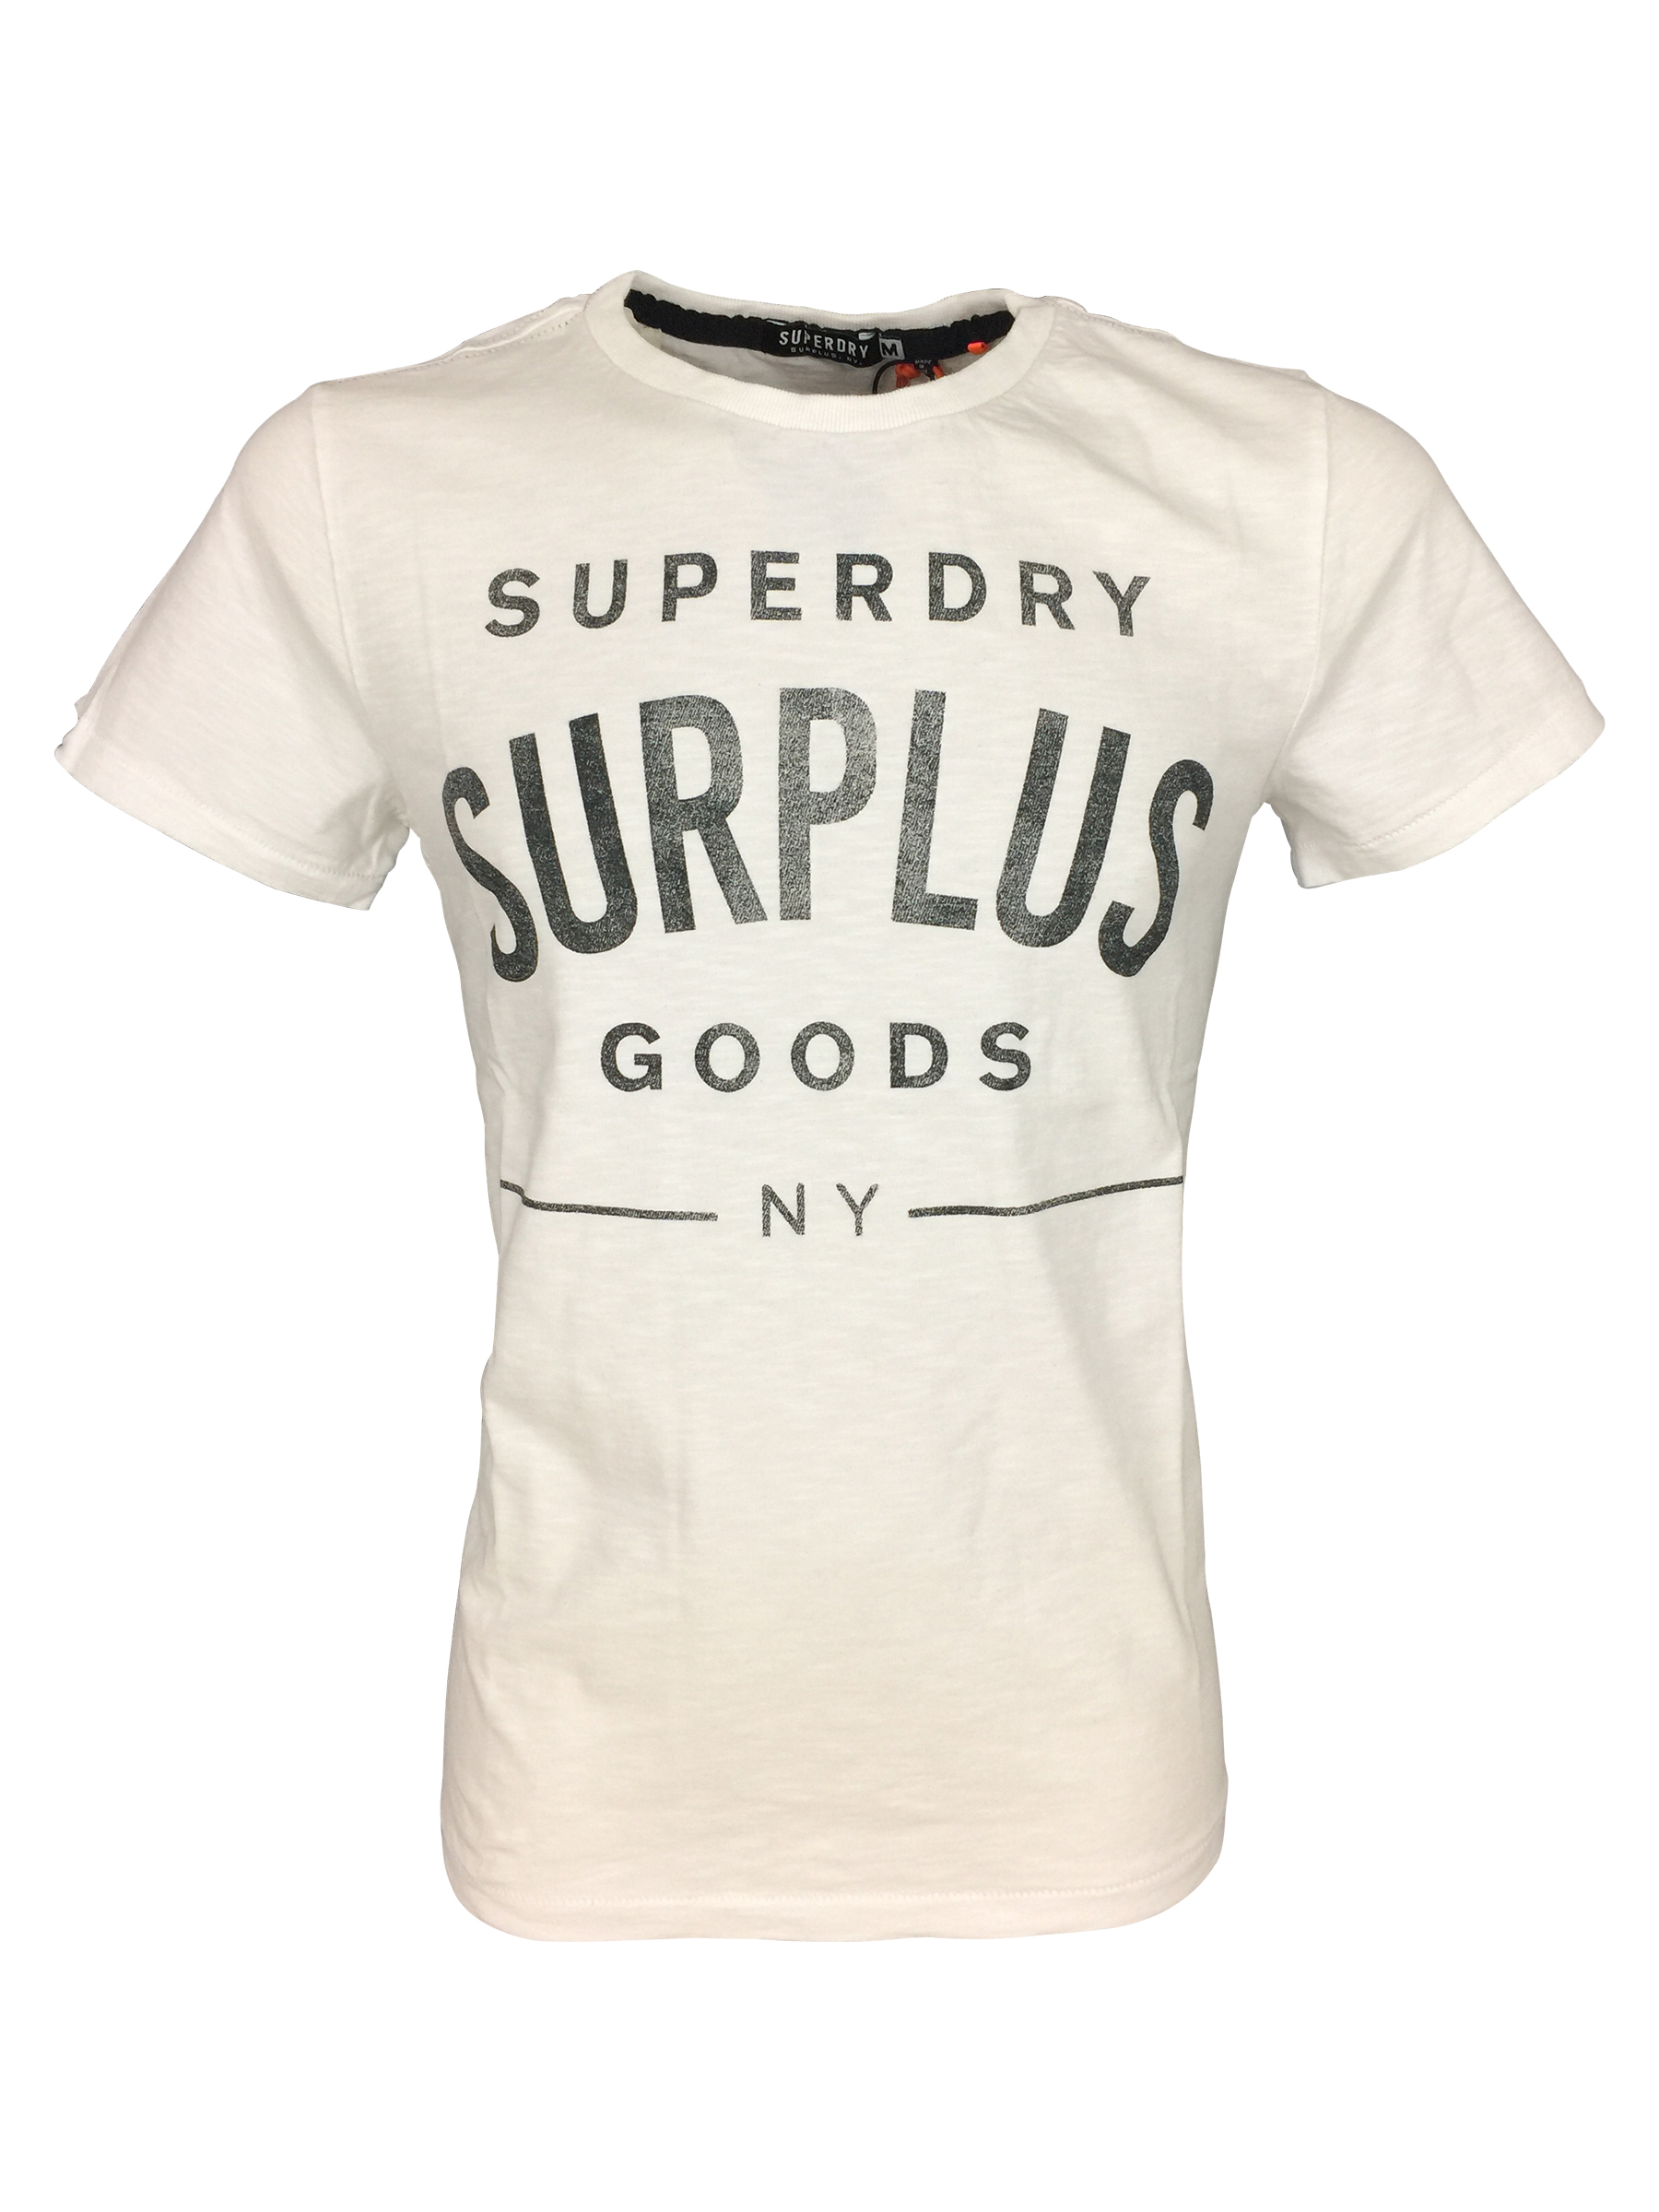 Sale superdry mens surplus goods graphic tee t shirt in for T shirt graphics for sale